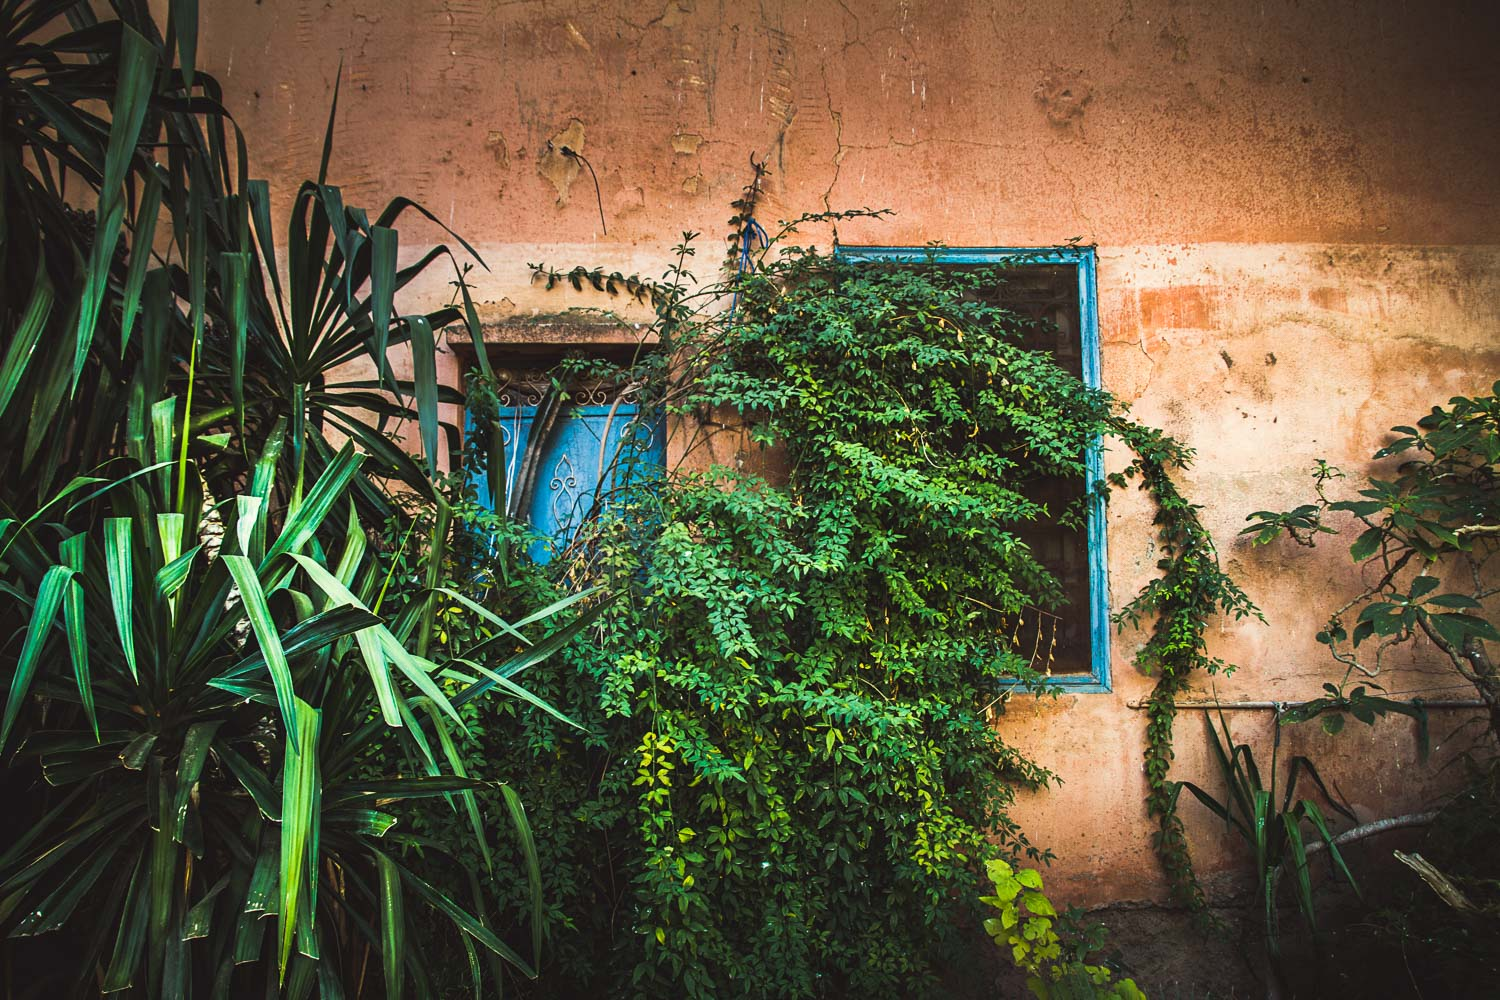 Marrakech, Morocco. 2014